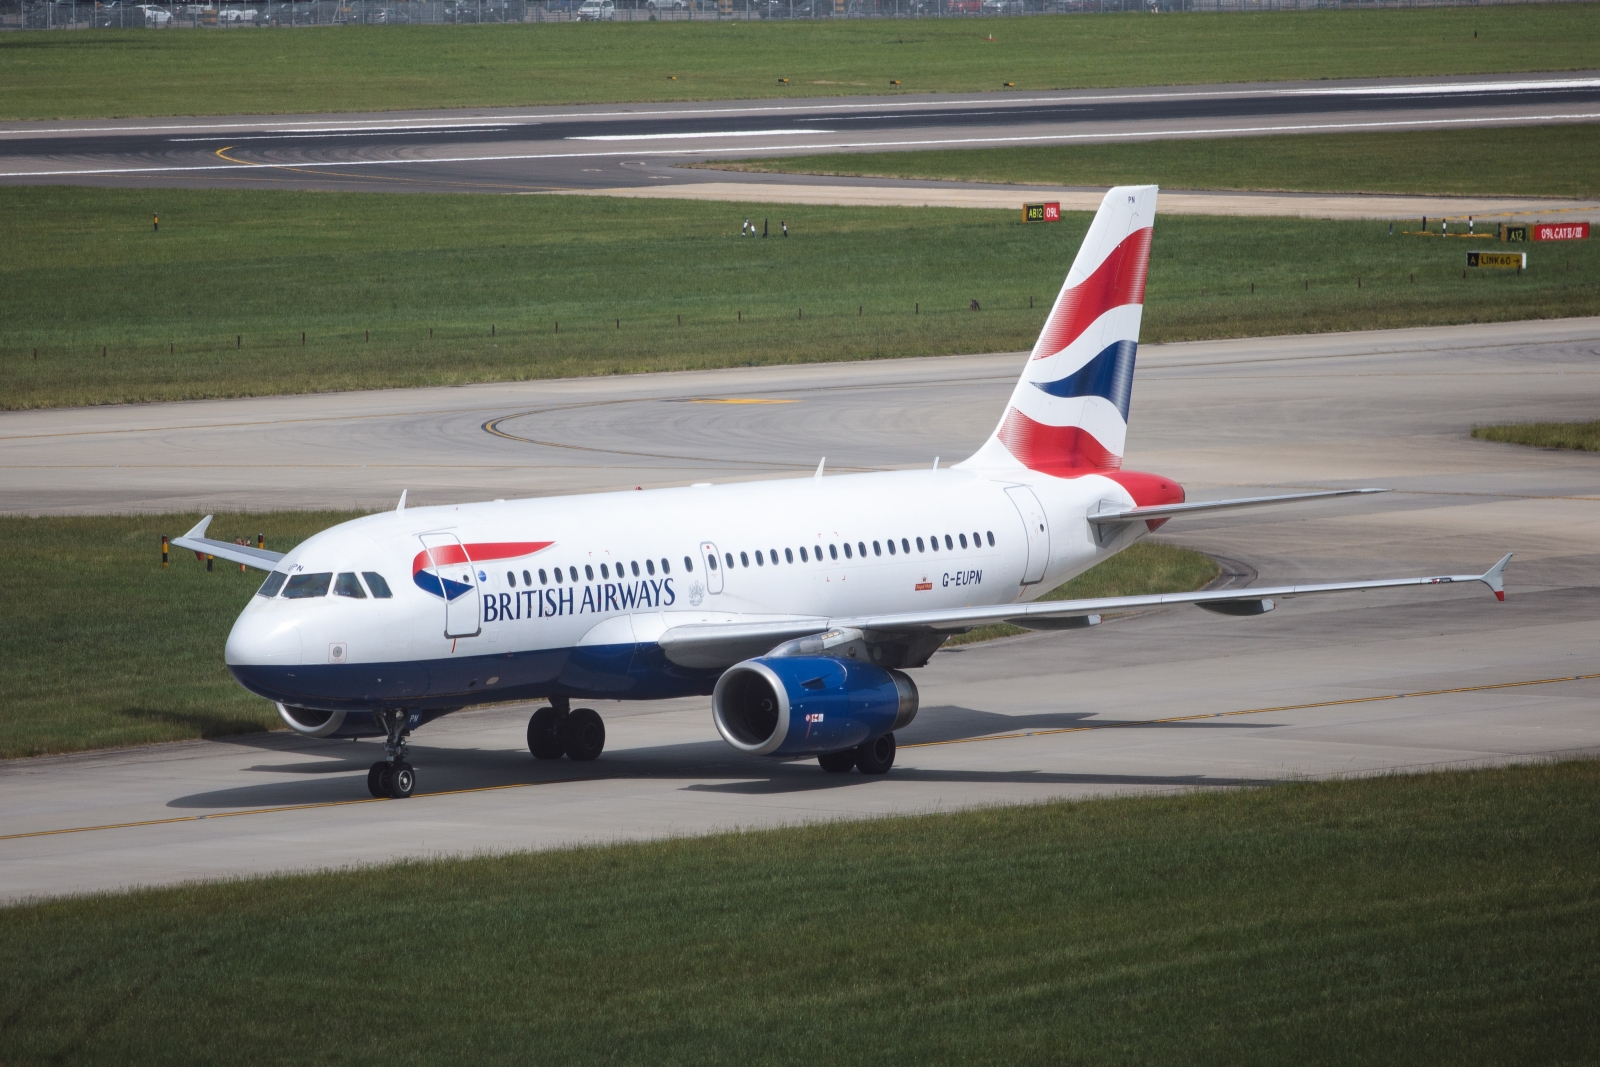 BA, Iberia travelers face 3rd day of delays, cancellations